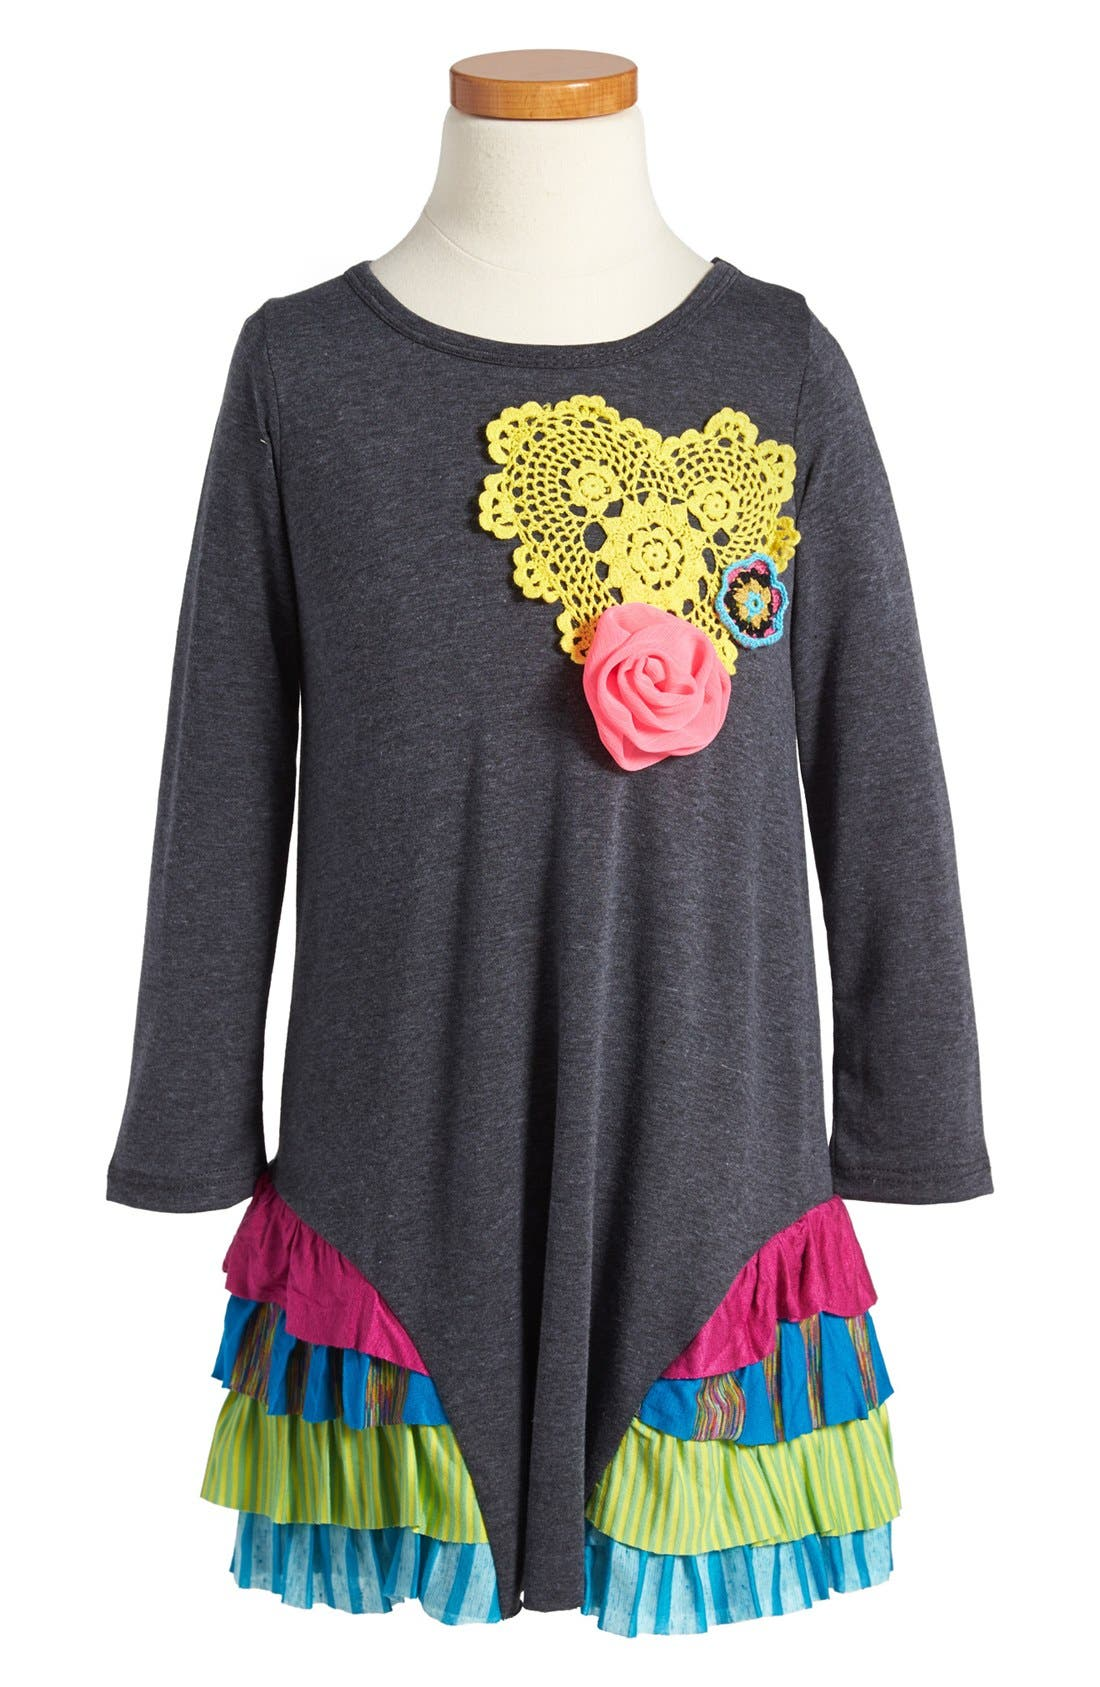 Alternate Image 1 Selected - Twirls & Twigs Knit Ruffle Dress (Little Girls & Big Girls)